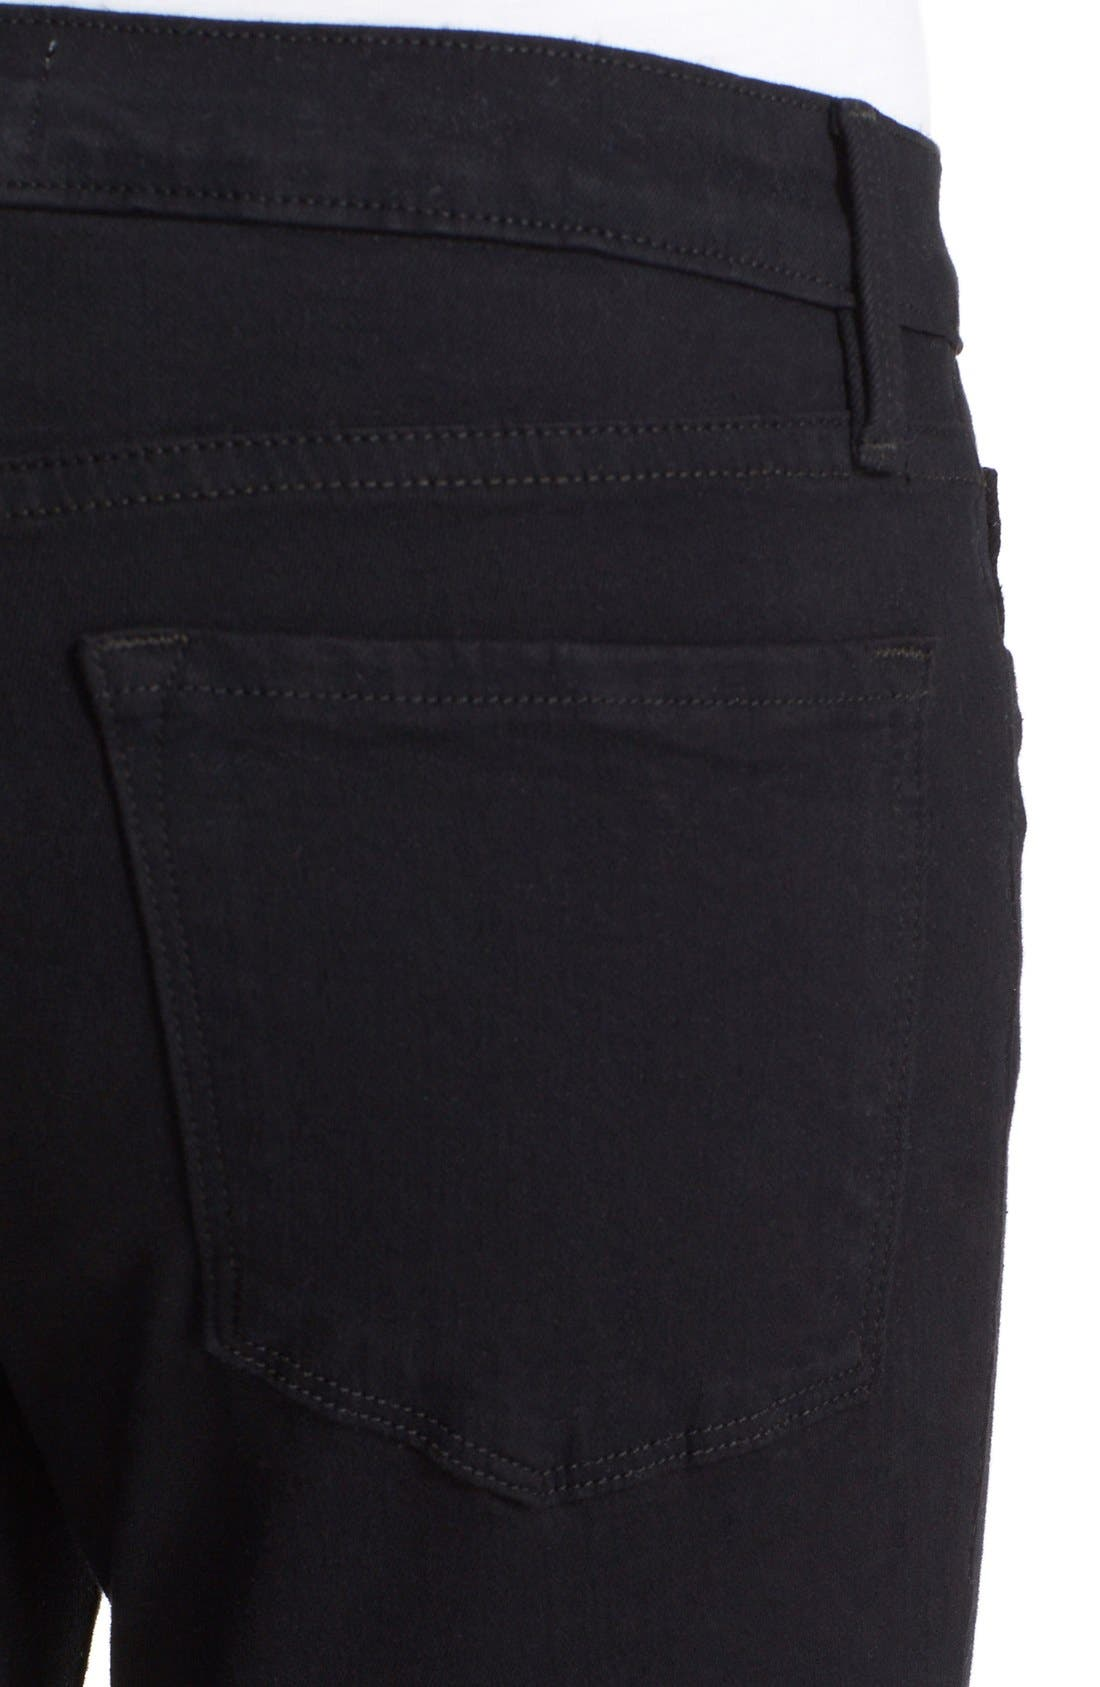 'Le Skinny de Jeanne' Ripped Jeans,                             Alternate thumbnail 4, color,                             Noir Jefferson